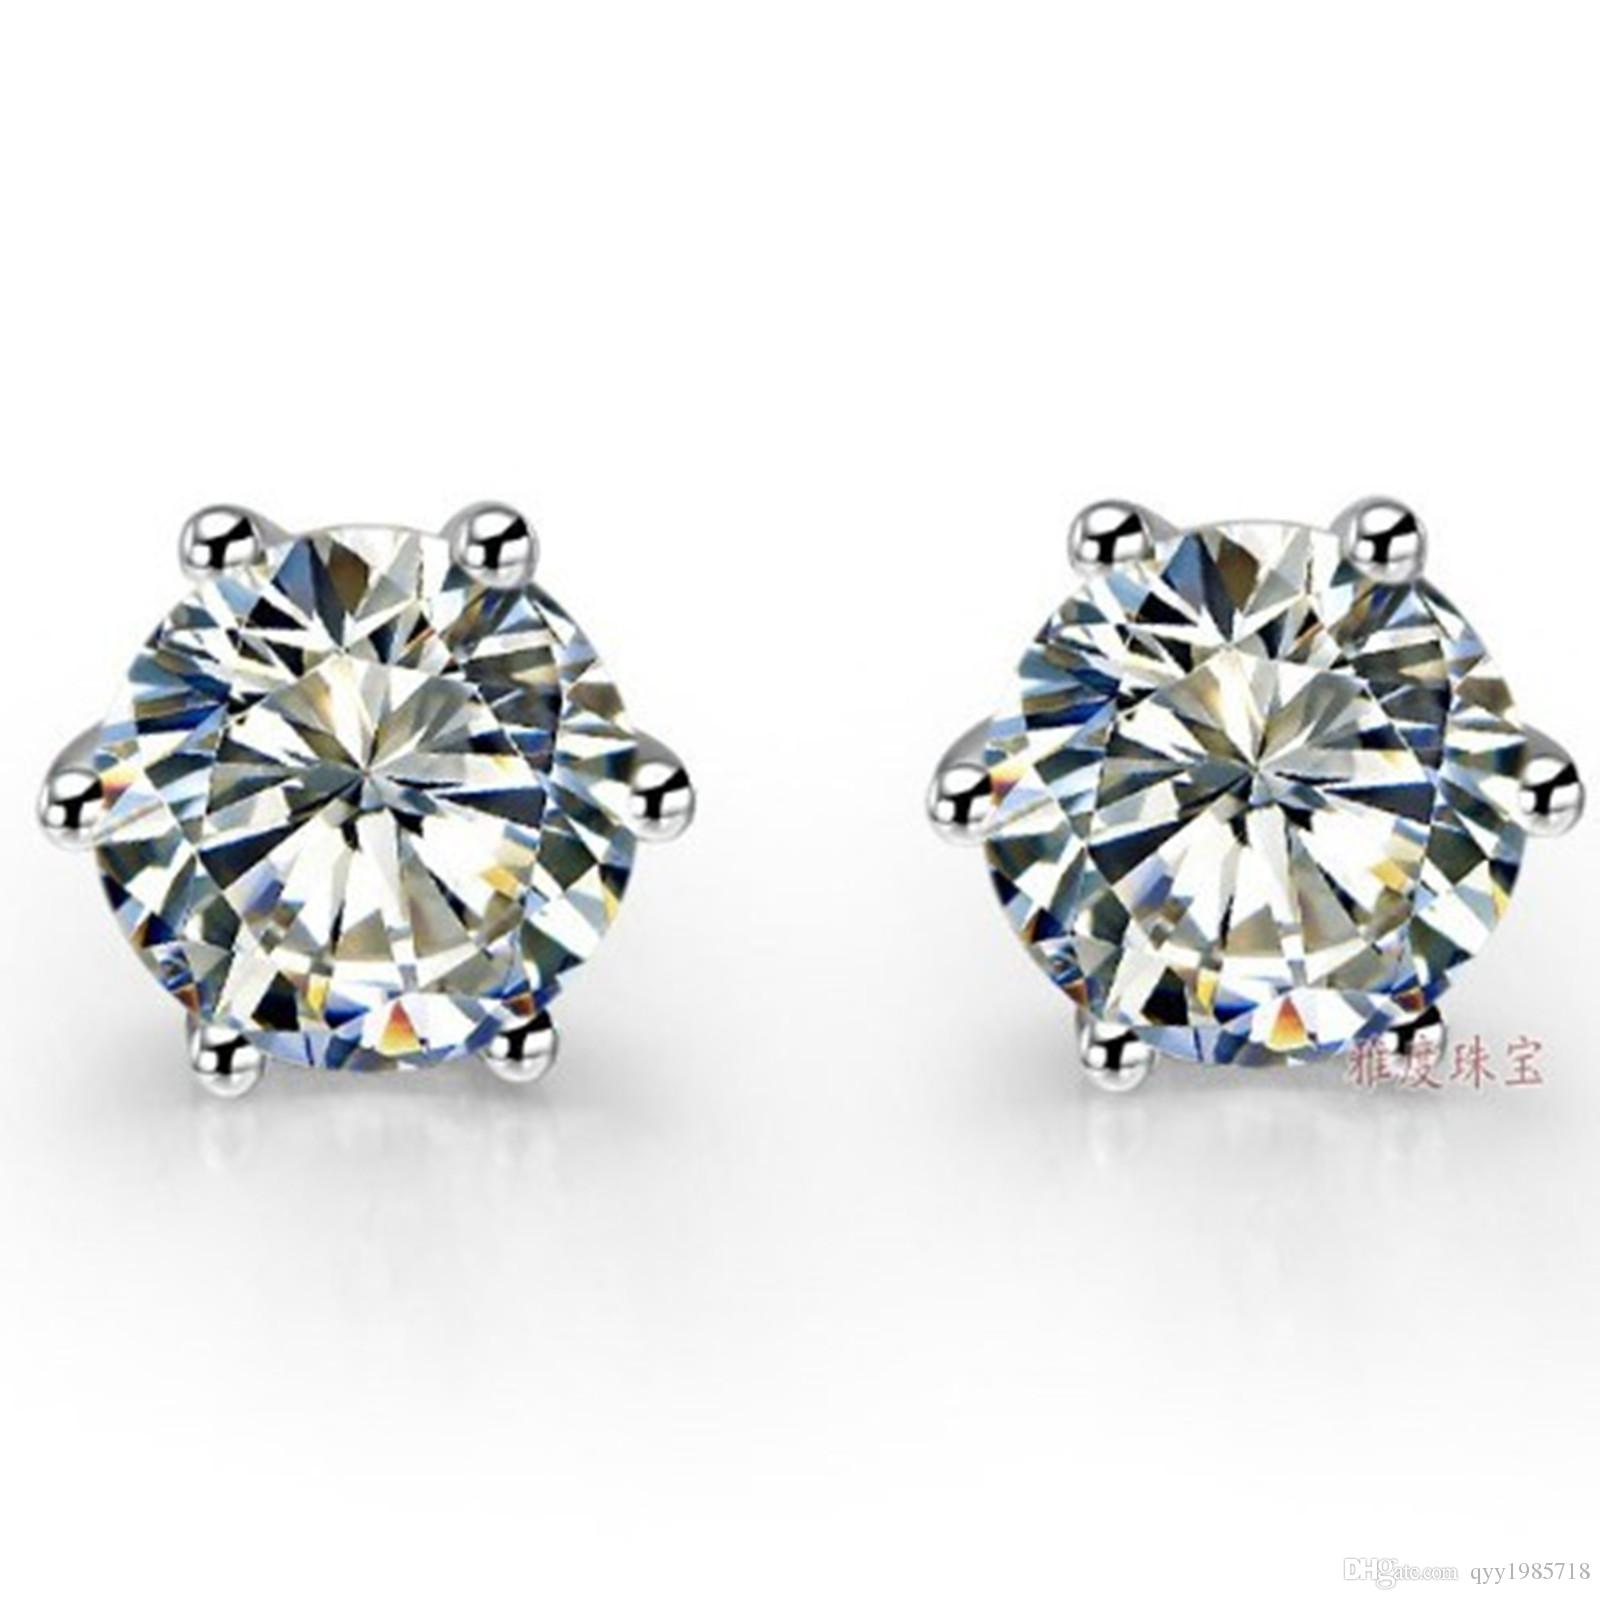 0.5CT Piece Round Cut Clear I-J Synthetic Diamonds Stud Earrings ... d48cef5b8cab